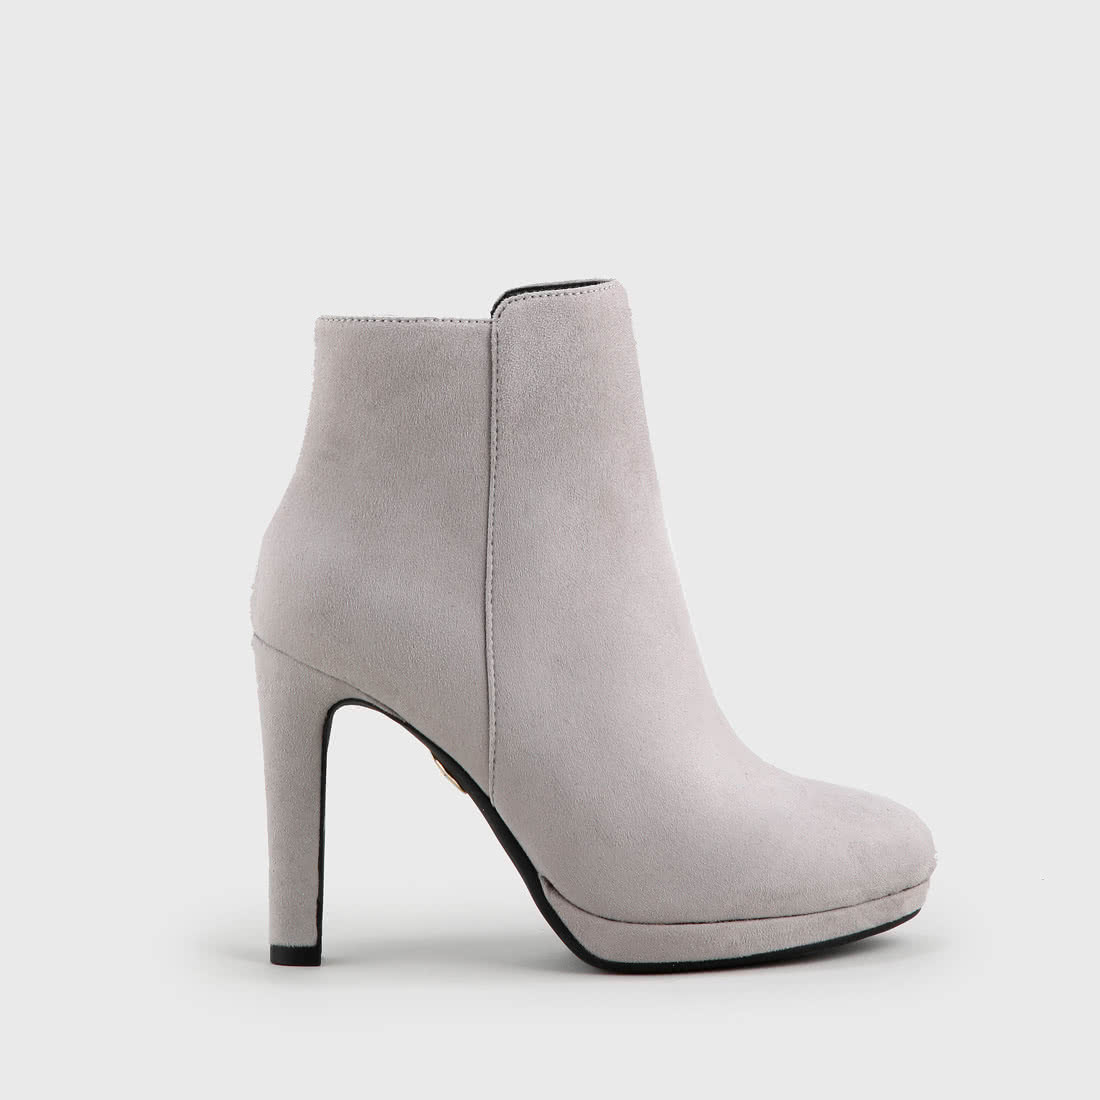 003a7f77ae8 Buffalo ankle boots suede look light grey buy online in BUFFALO ...